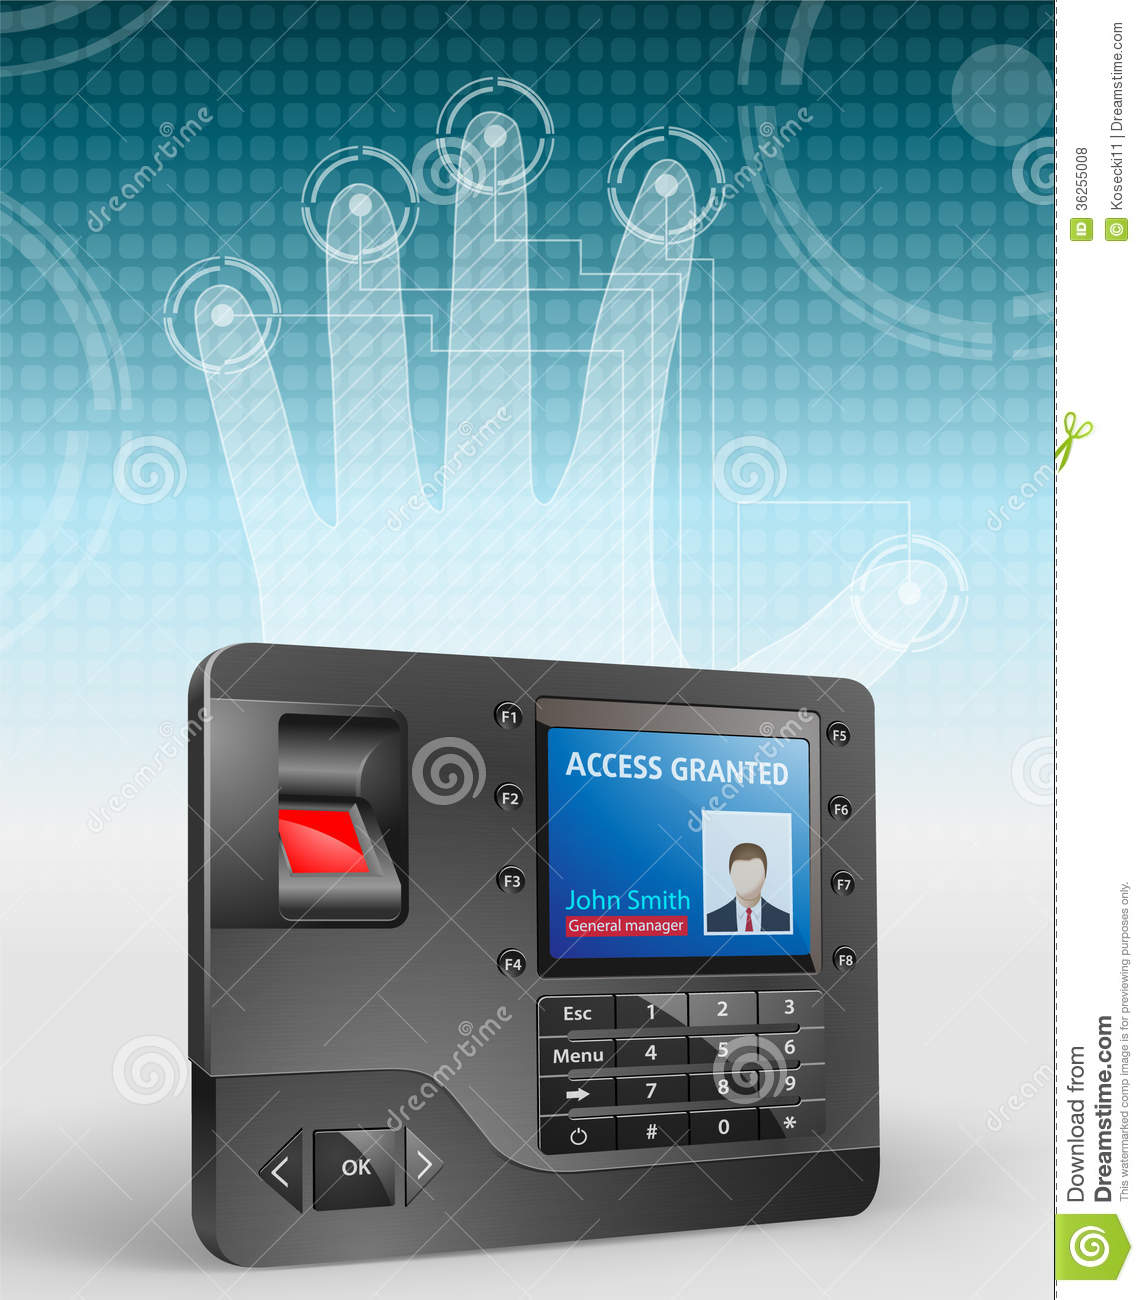 Access Control Fingerprint Scanner 3 Royalty Free Stock